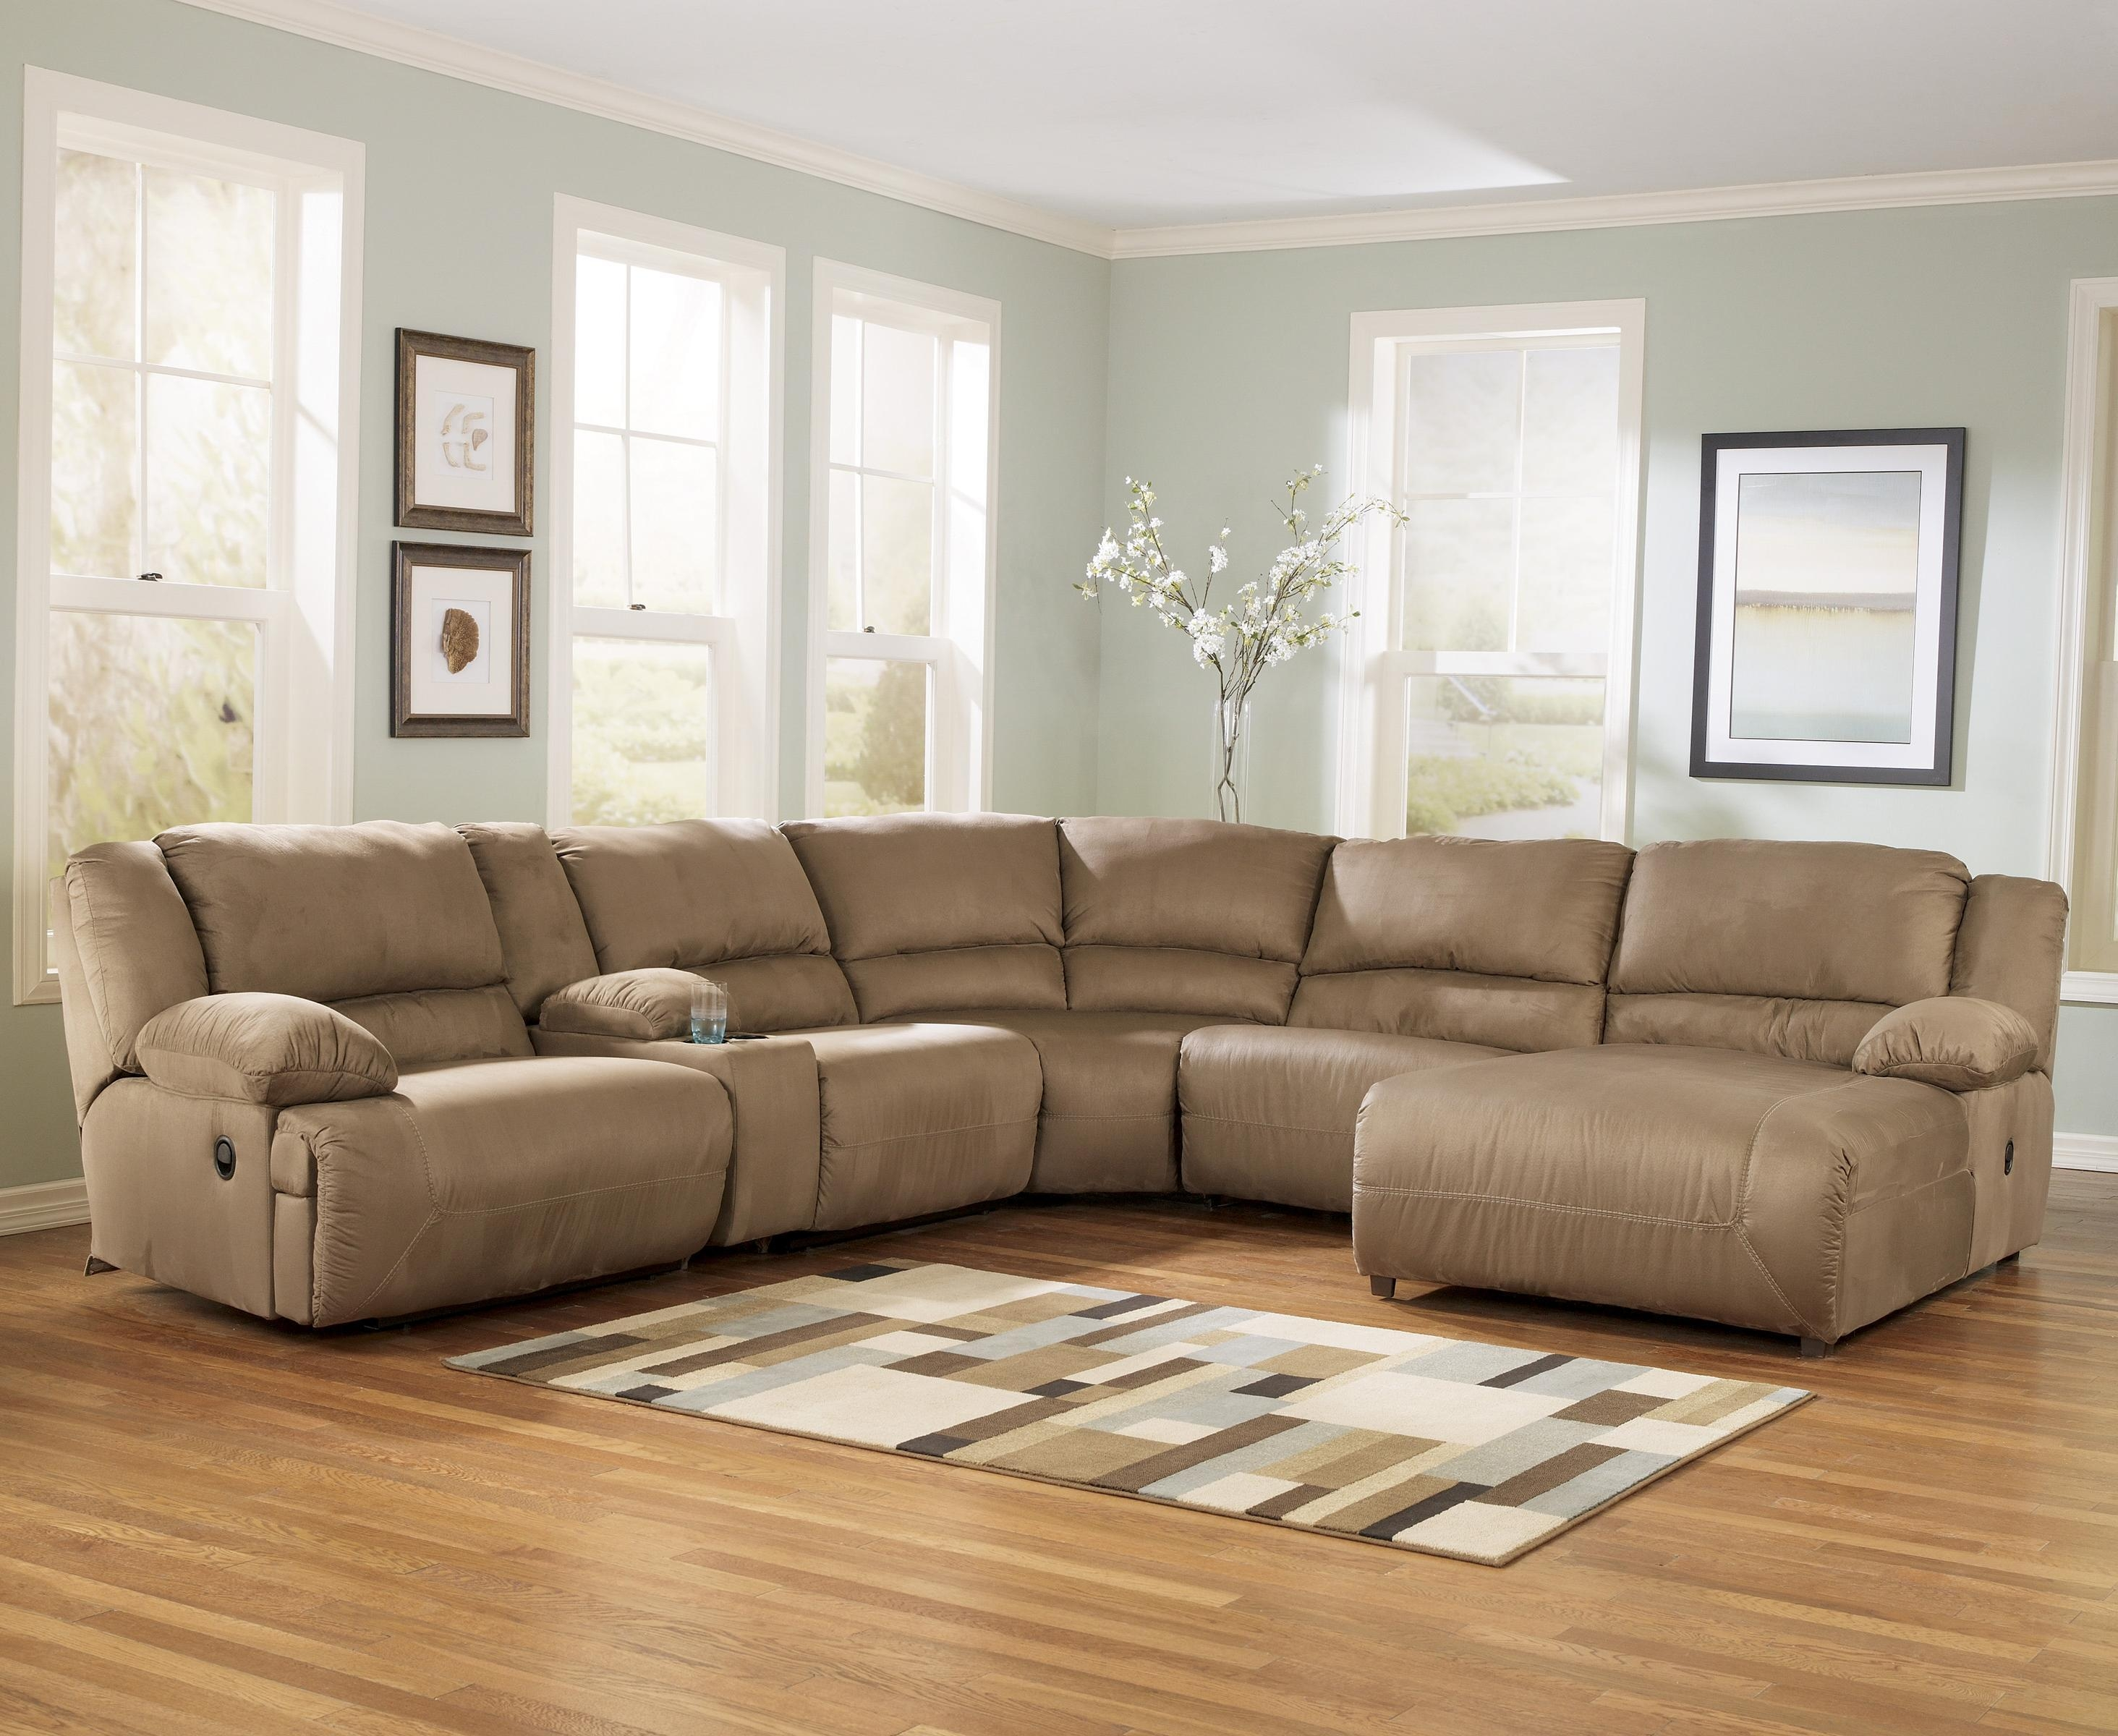 Living Room: Mocha 6 Piece Ashley Furniture Sectionals For Within Ashley Furniture Grenada Sectional (View 13 of 15)